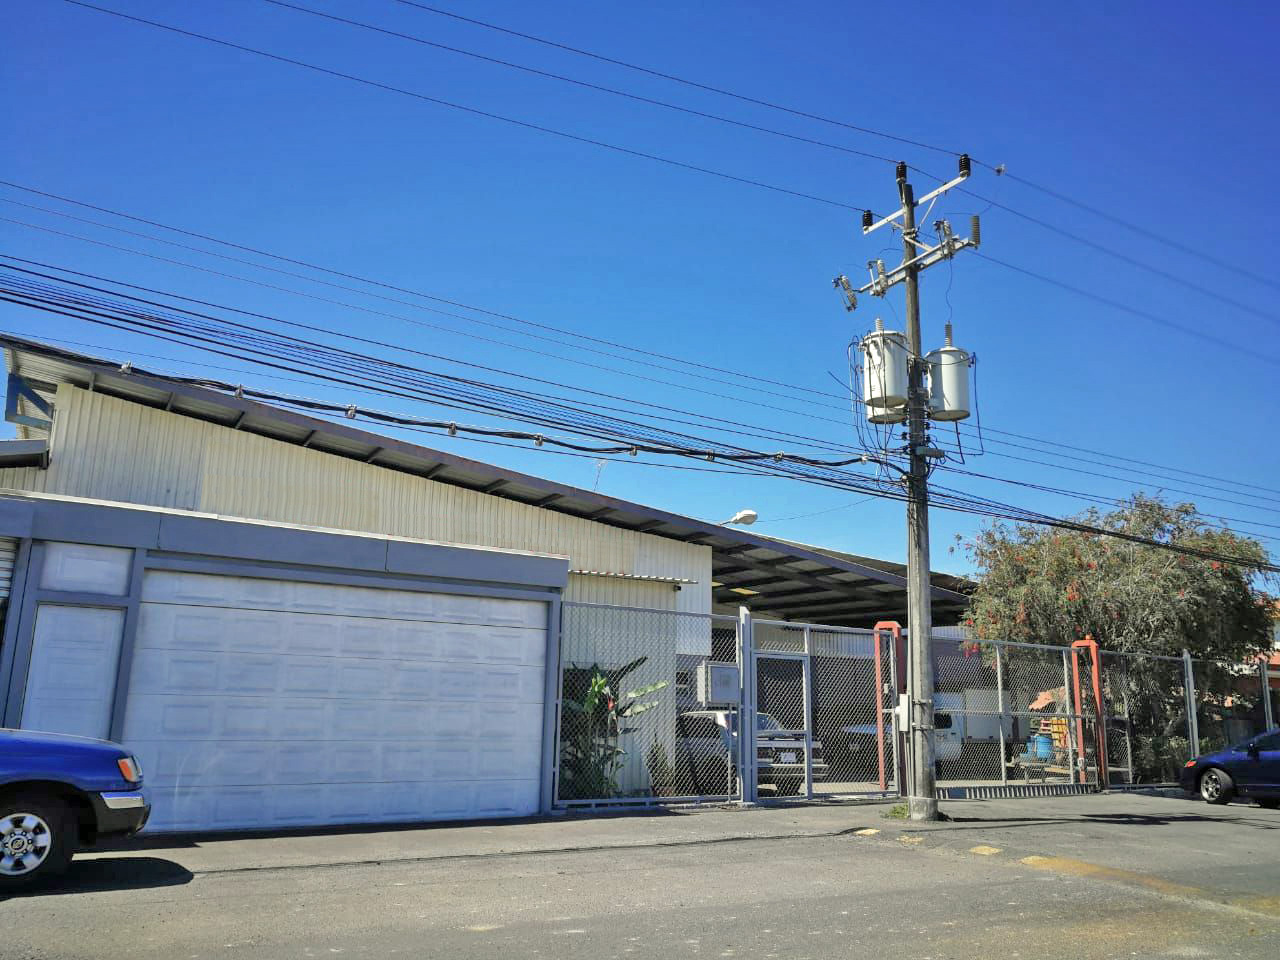 8600-ft2 Industrial Warehouse for Rent in Cartago, Just off Highway